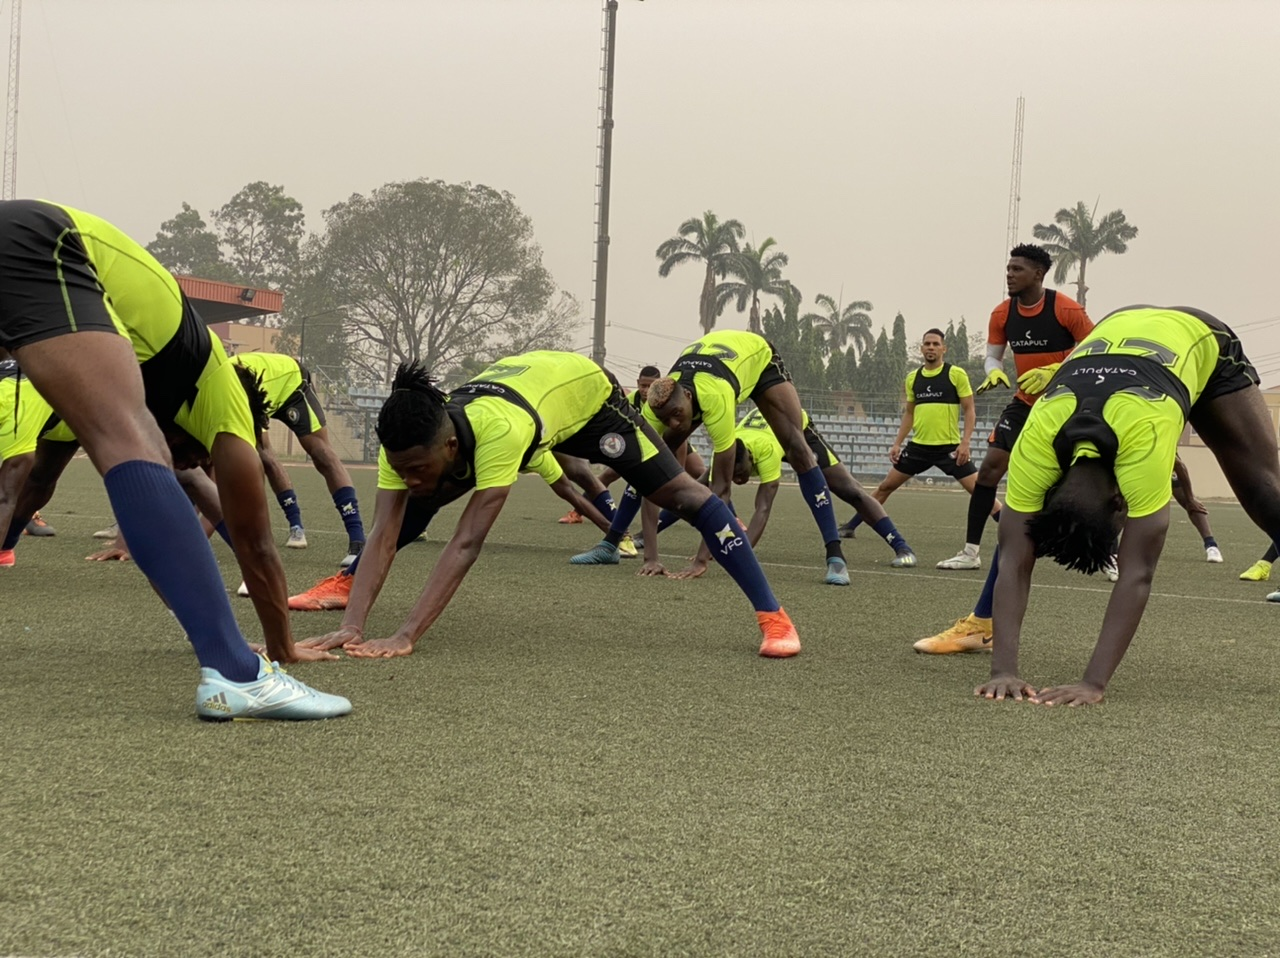 VFC CLASH WITH TEAM LAGOS IN FRIENDLY